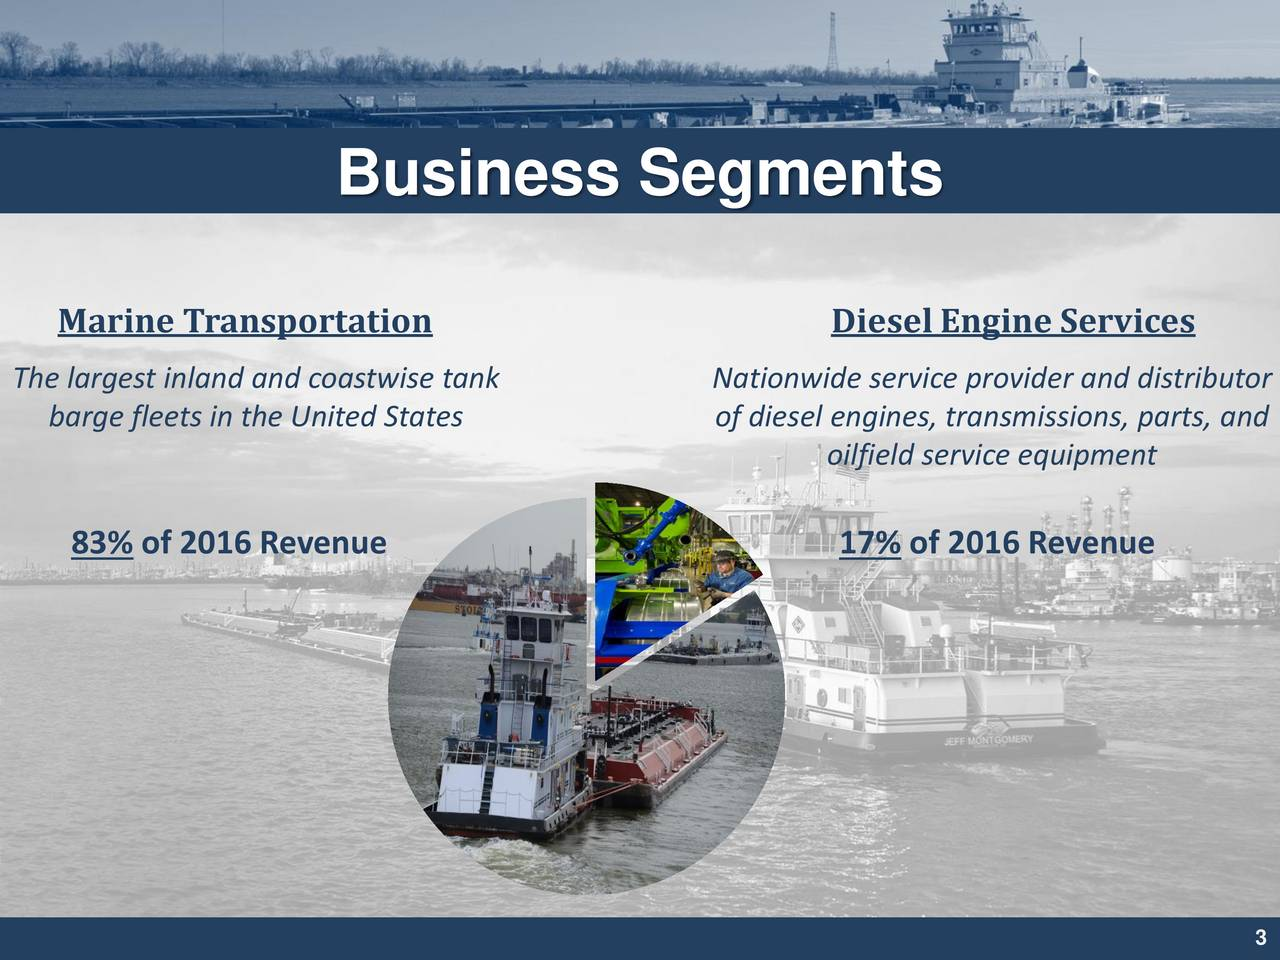 Marine Transportation DieselEngine Services The largest inland and coastwise tank Nationwide service provider and distributor barge fleets in the United States of diesel engines, transmissions, parts, and oilfield service equipment 83% of 2016 Revenue 17% of 2016 Revenue